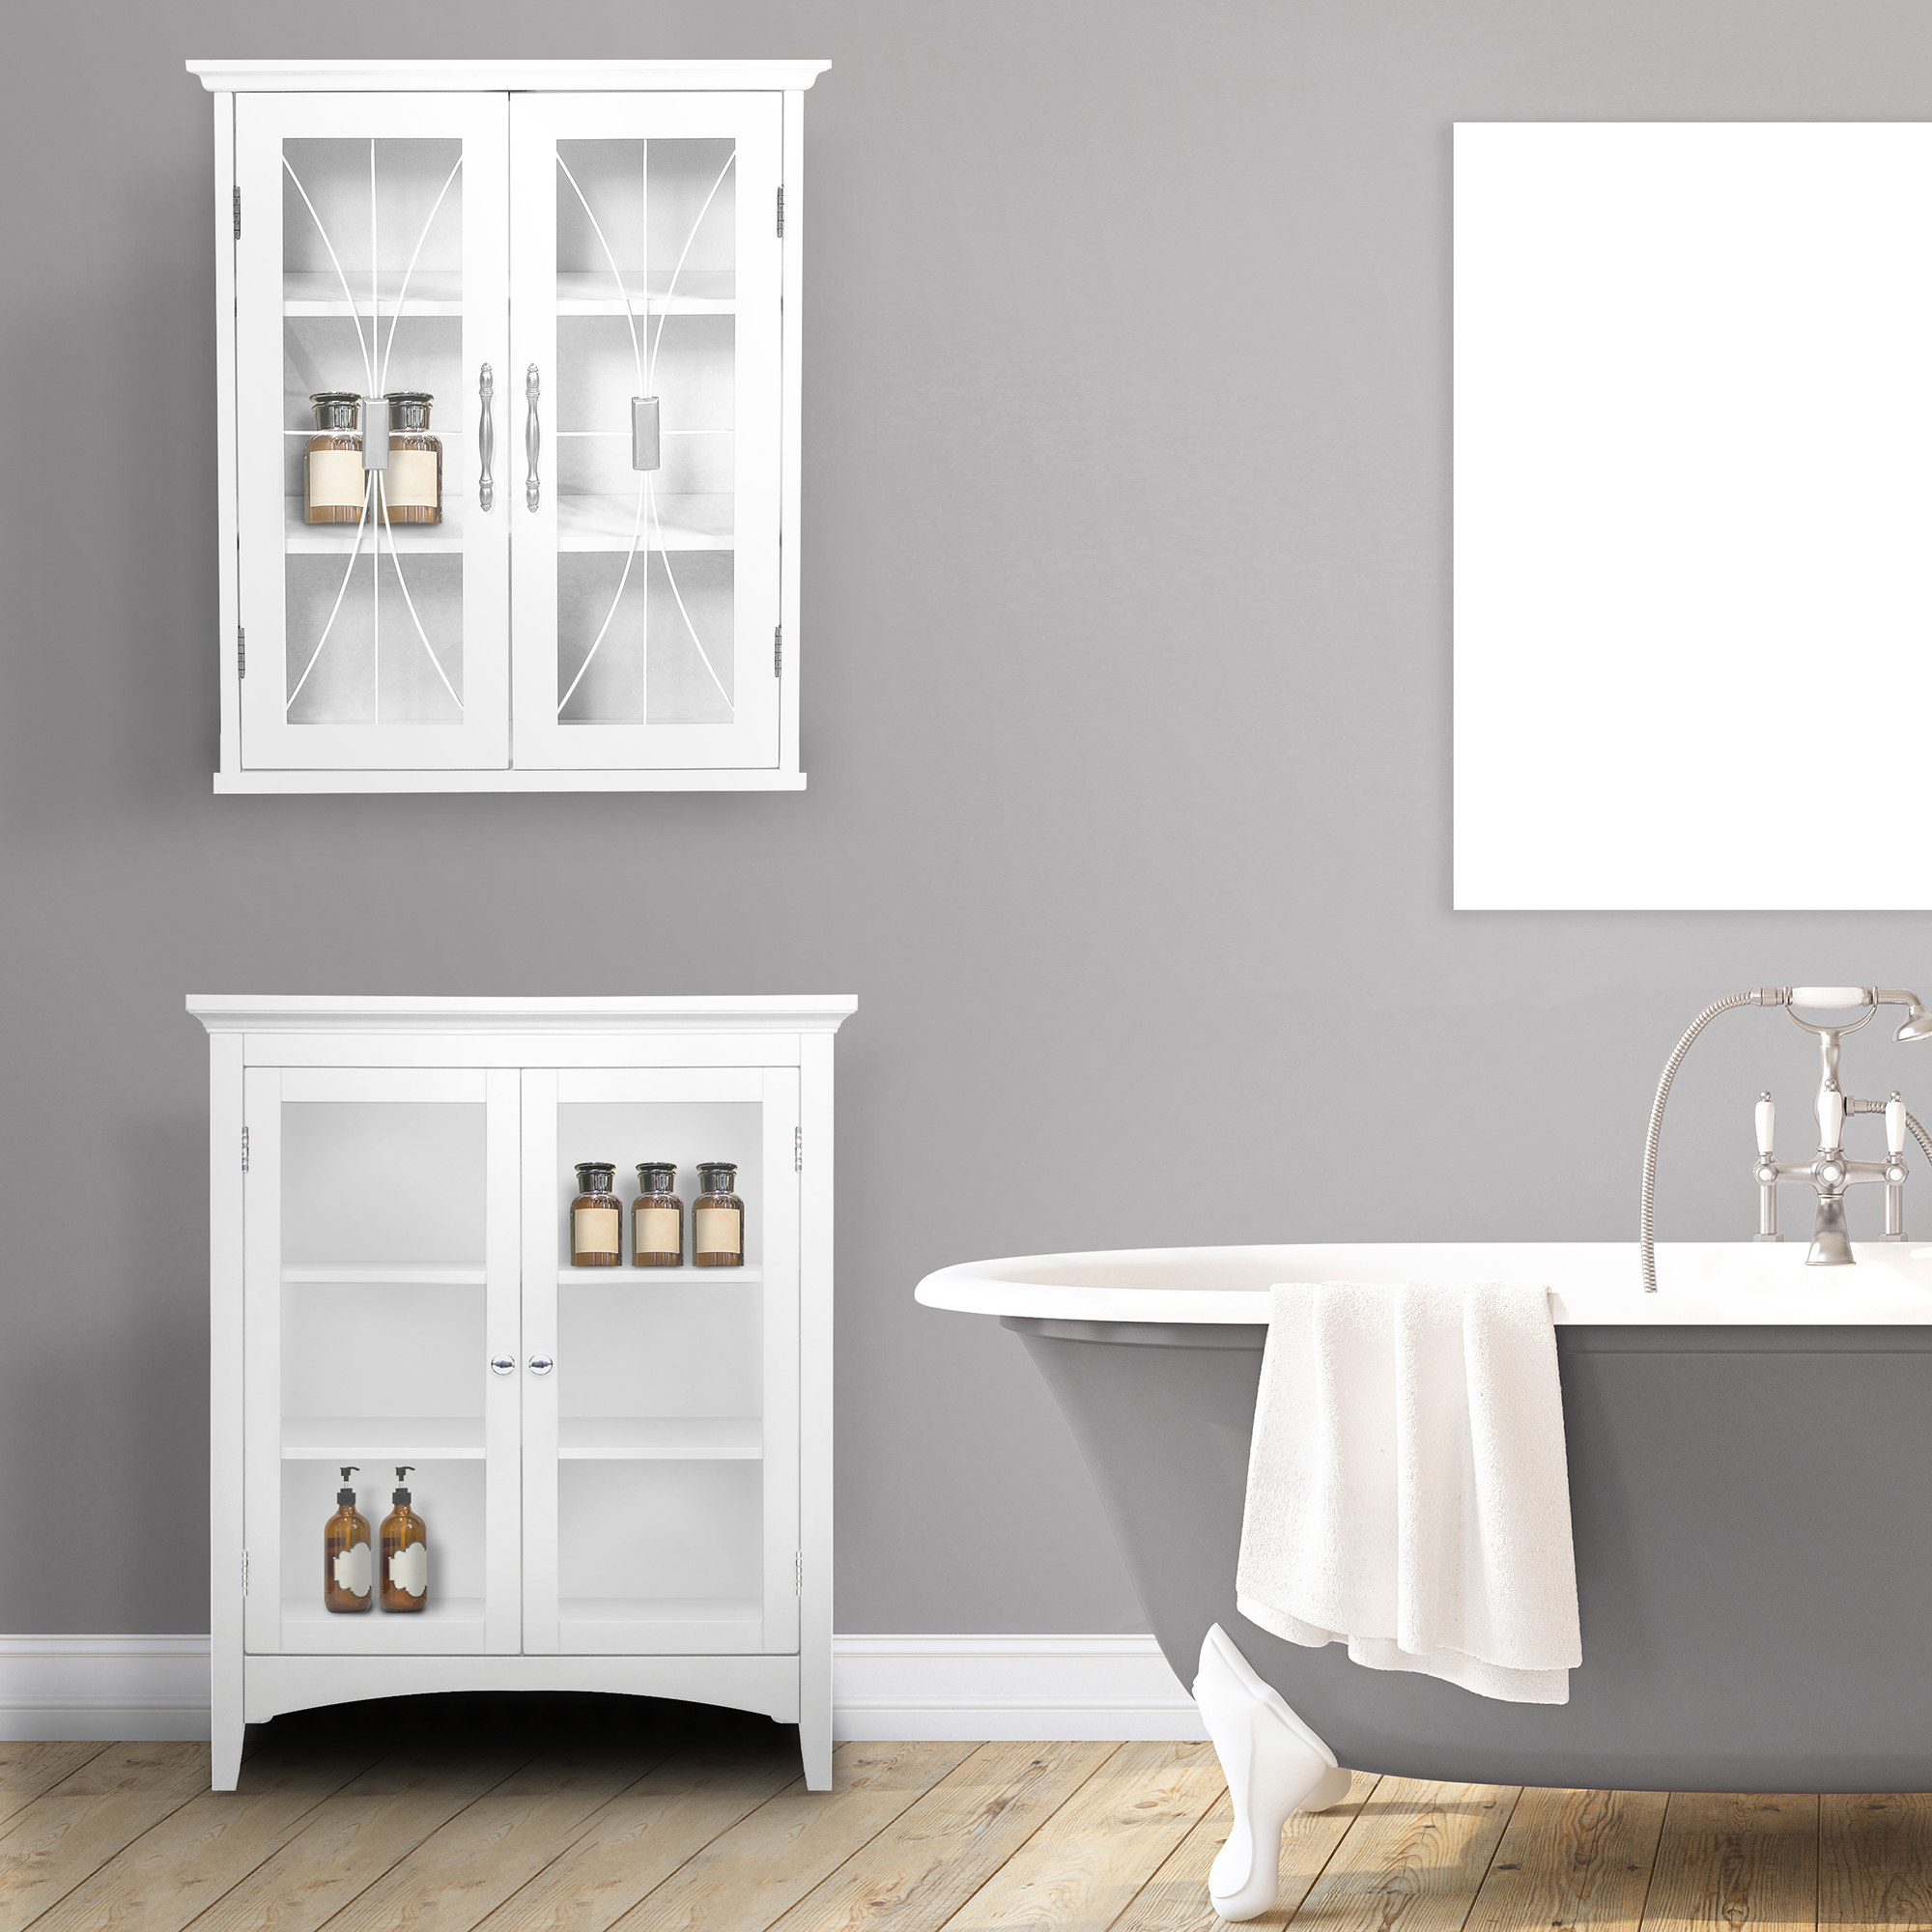 The white cabinet hanging